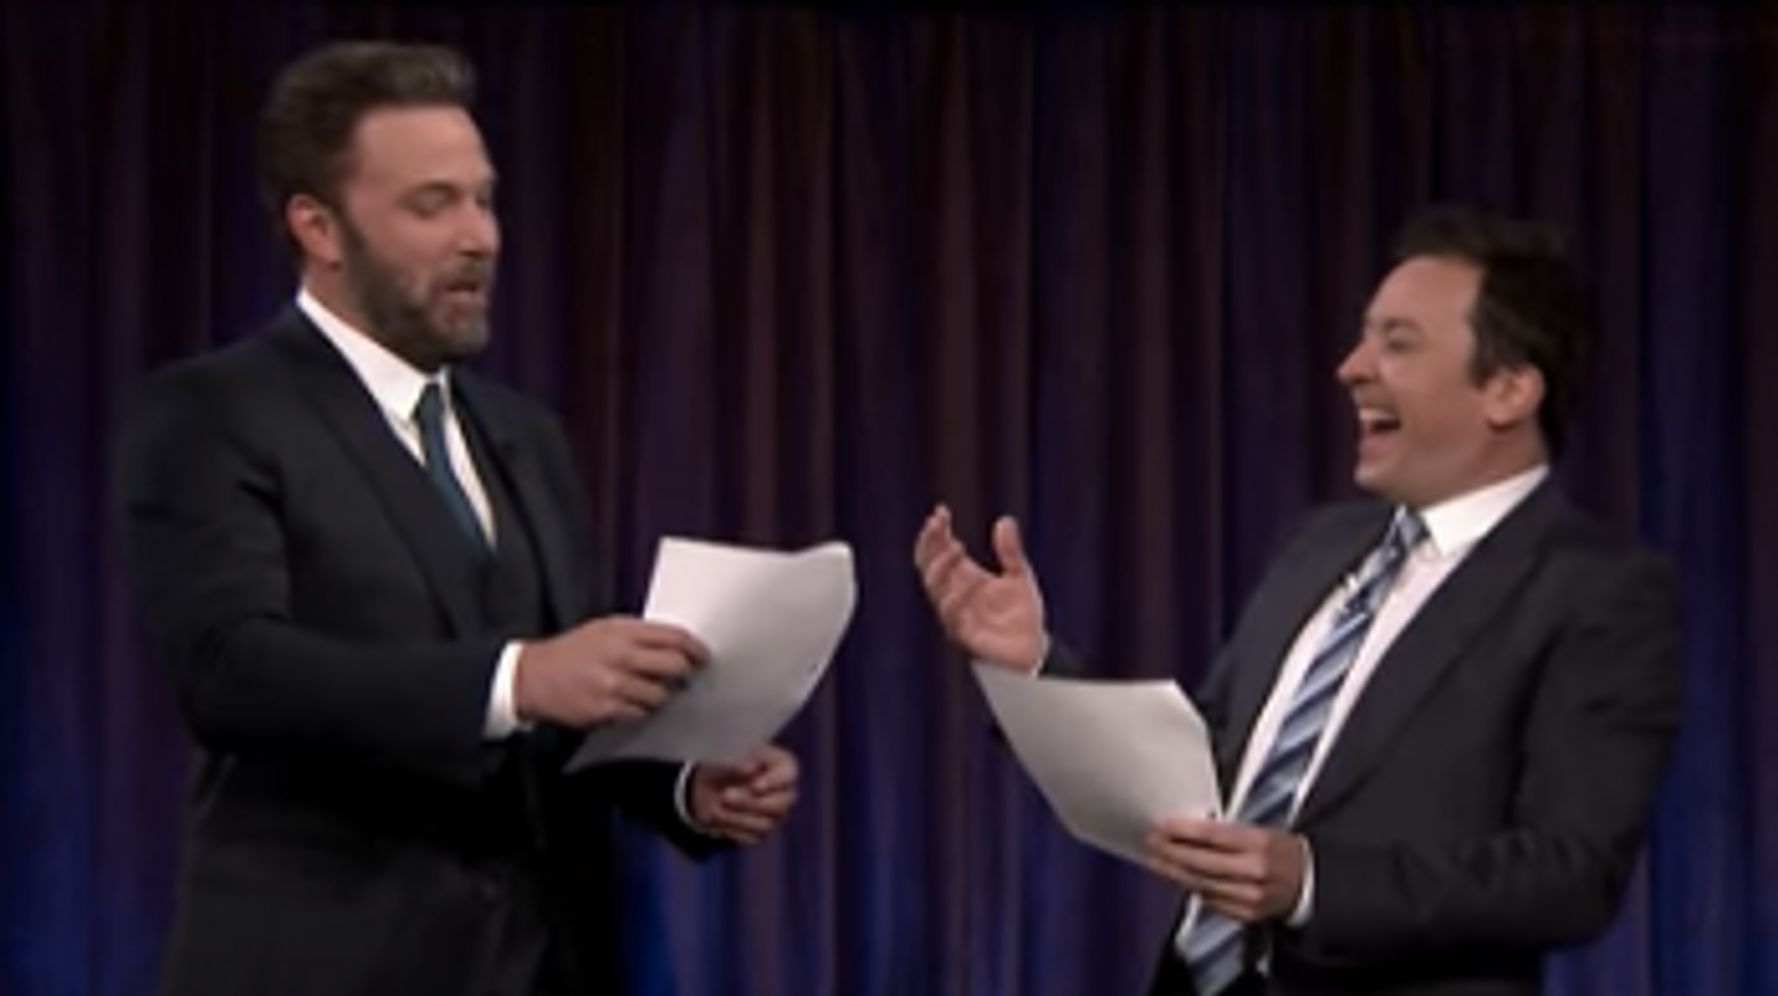 Ben Affleck, Jimmy Fallon Perform Cute 'Accountant' Scenes Written